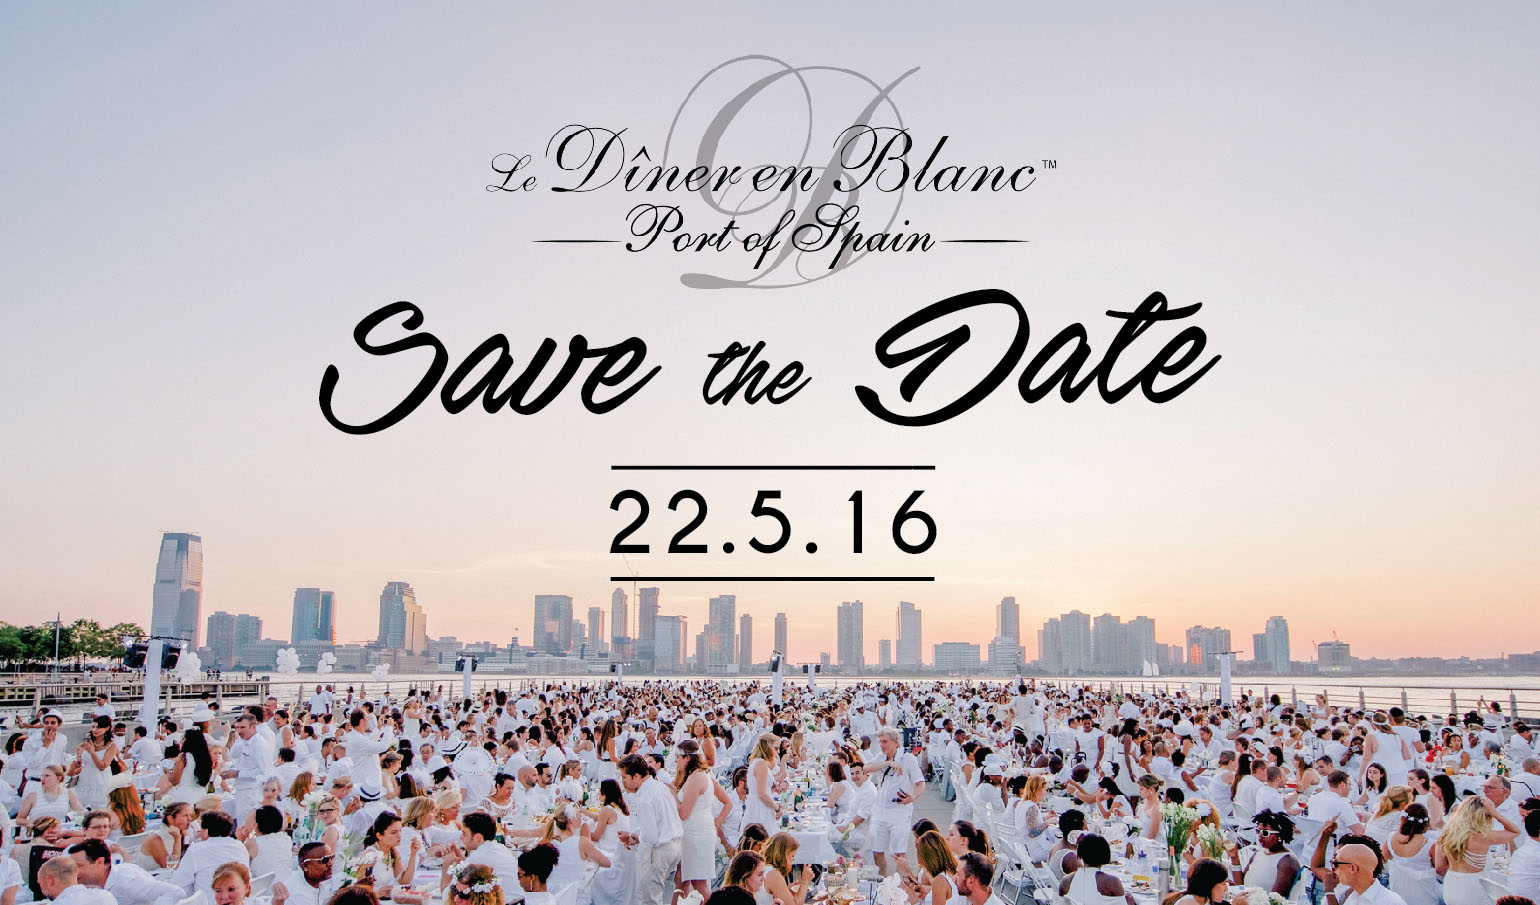 Save the date email in Auckland